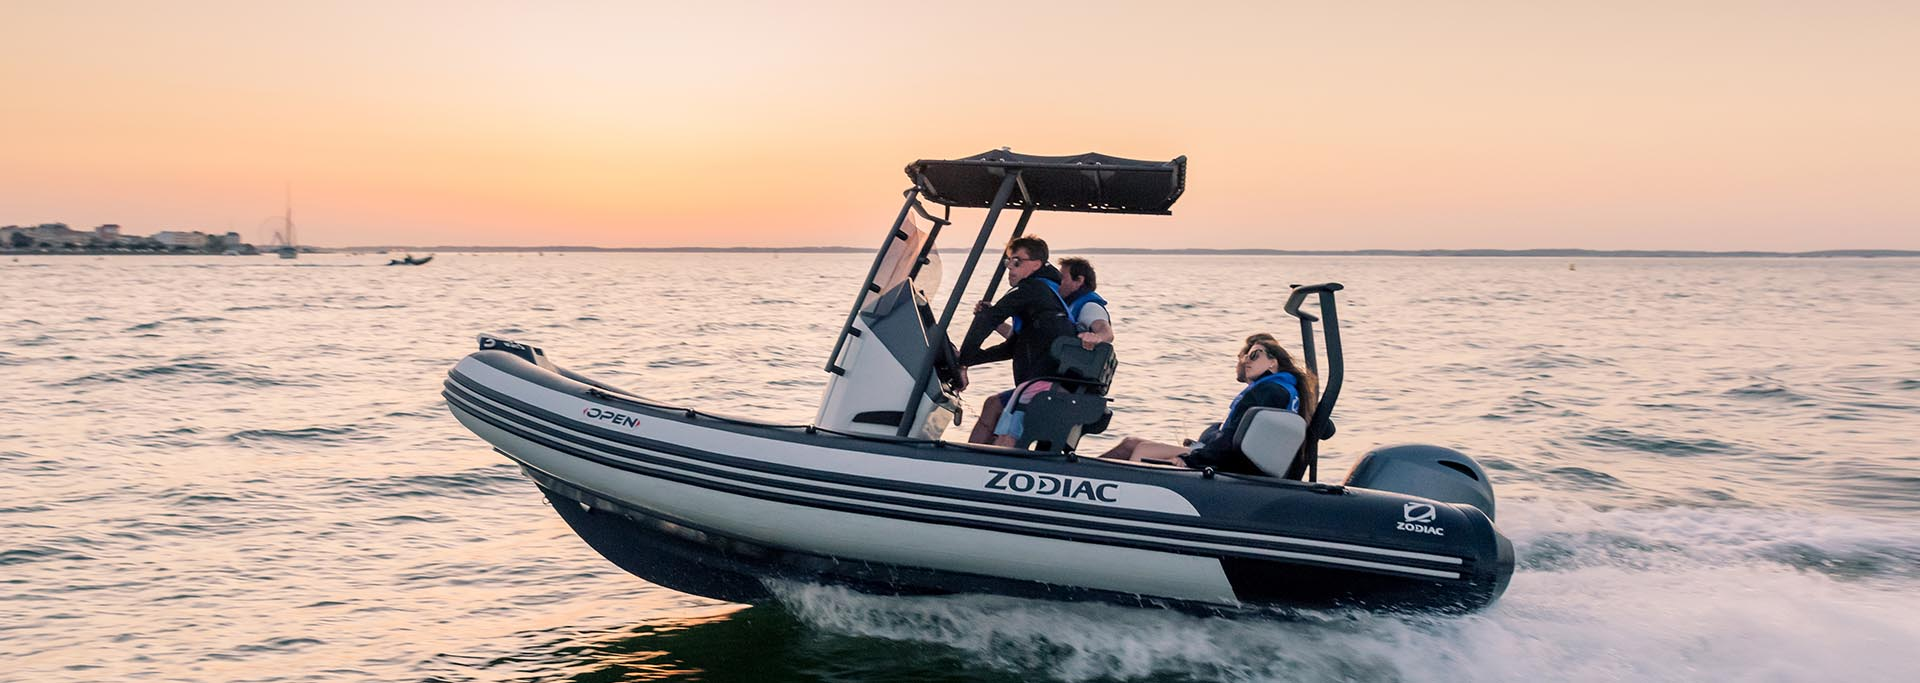 zodiac open 5.5 boat on the water at sunset